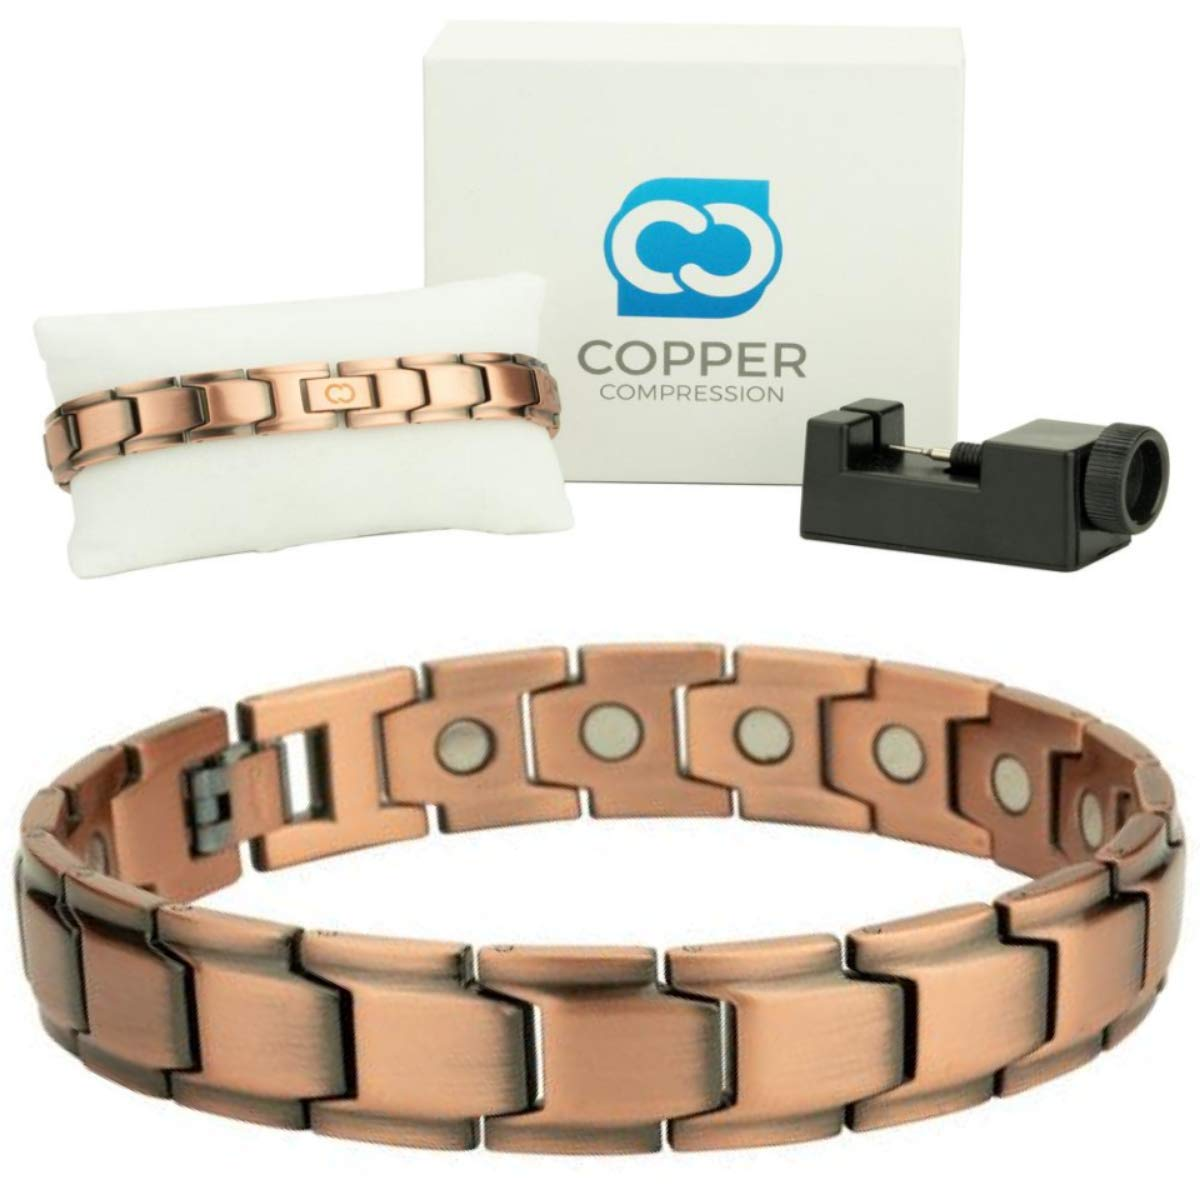 Copper Compression Elegant Luxury Copper Bracelet for Arthritis - 99.9% Pure Copper Magnetic Therapy 18 Magnet Link Bracelet for Men & Women. Therapeutic Bracelets for Carpal Tunnel Arthritis, Golf